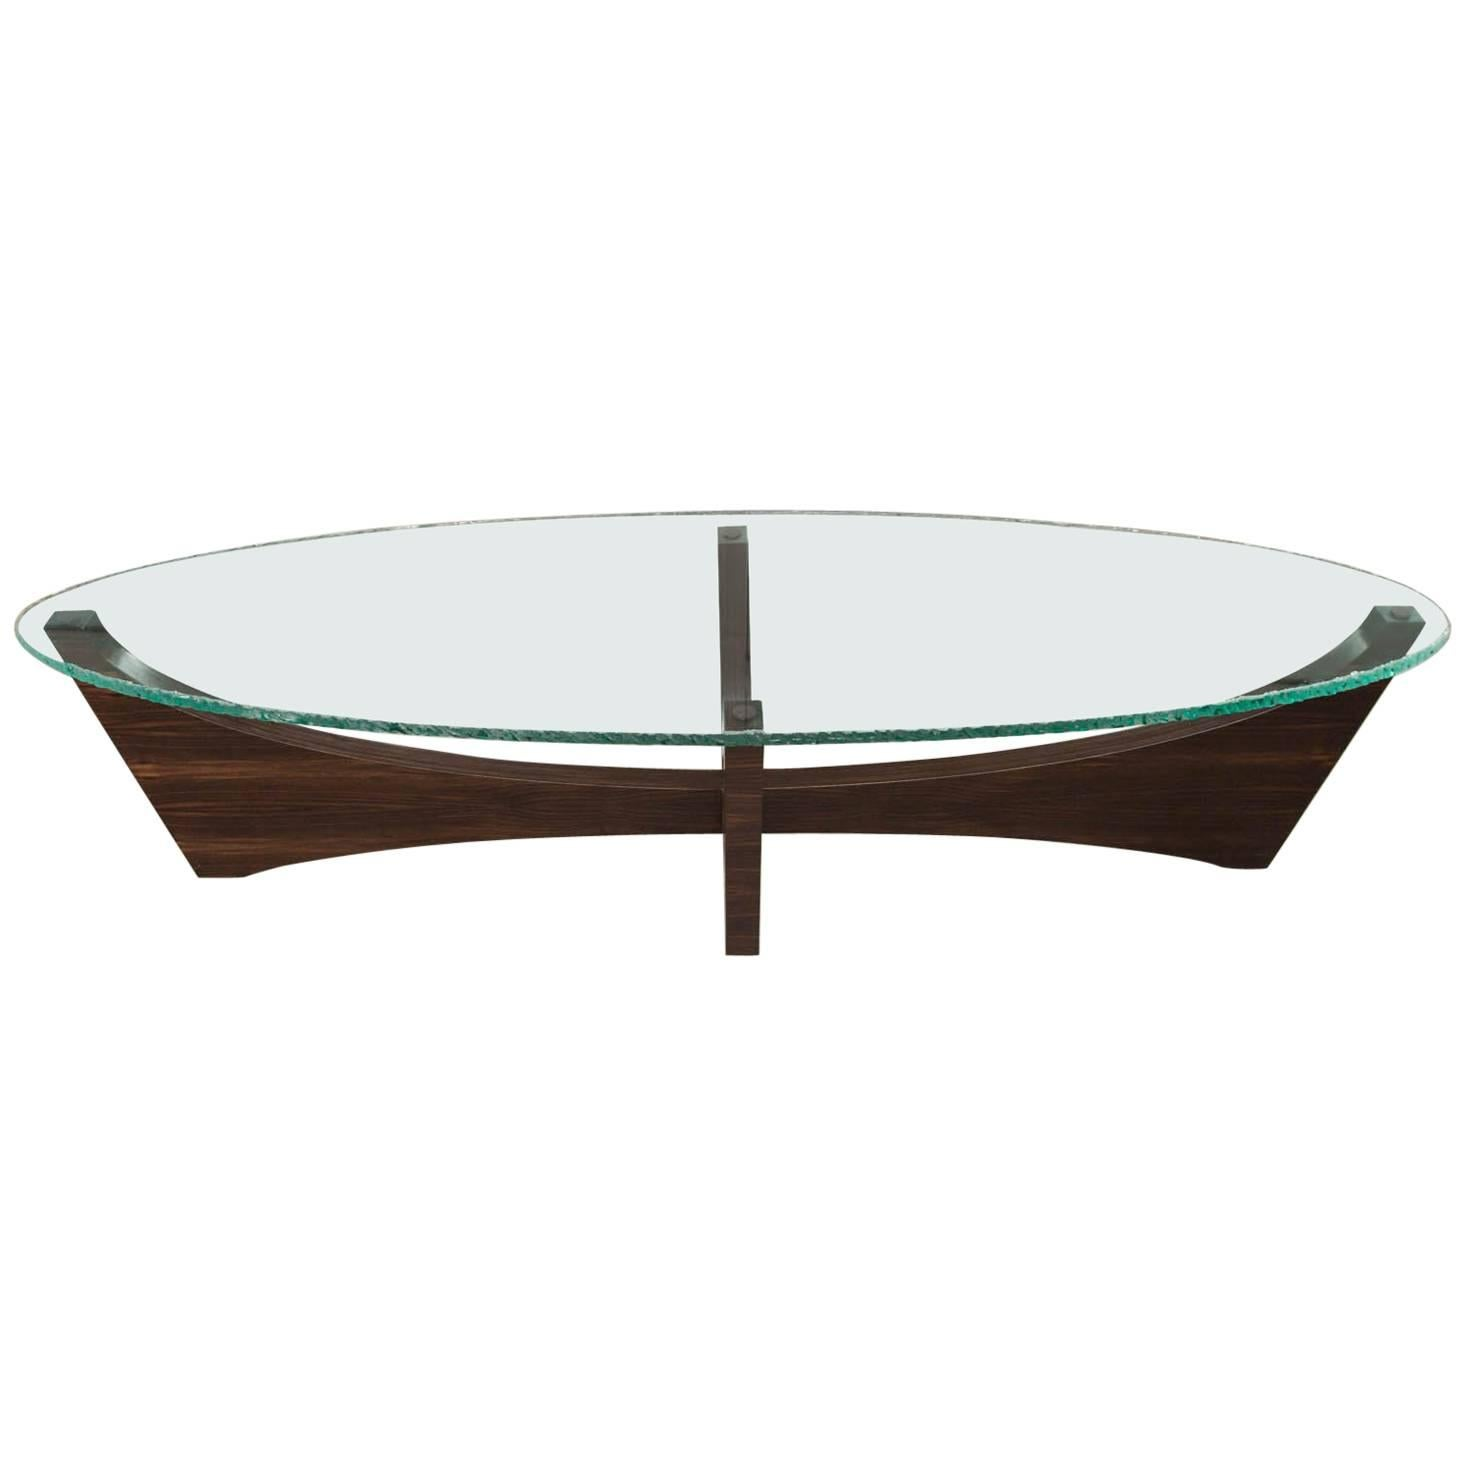 Surfboard Shaped Glass and Ebony Cocktail Table by Gregory Clark